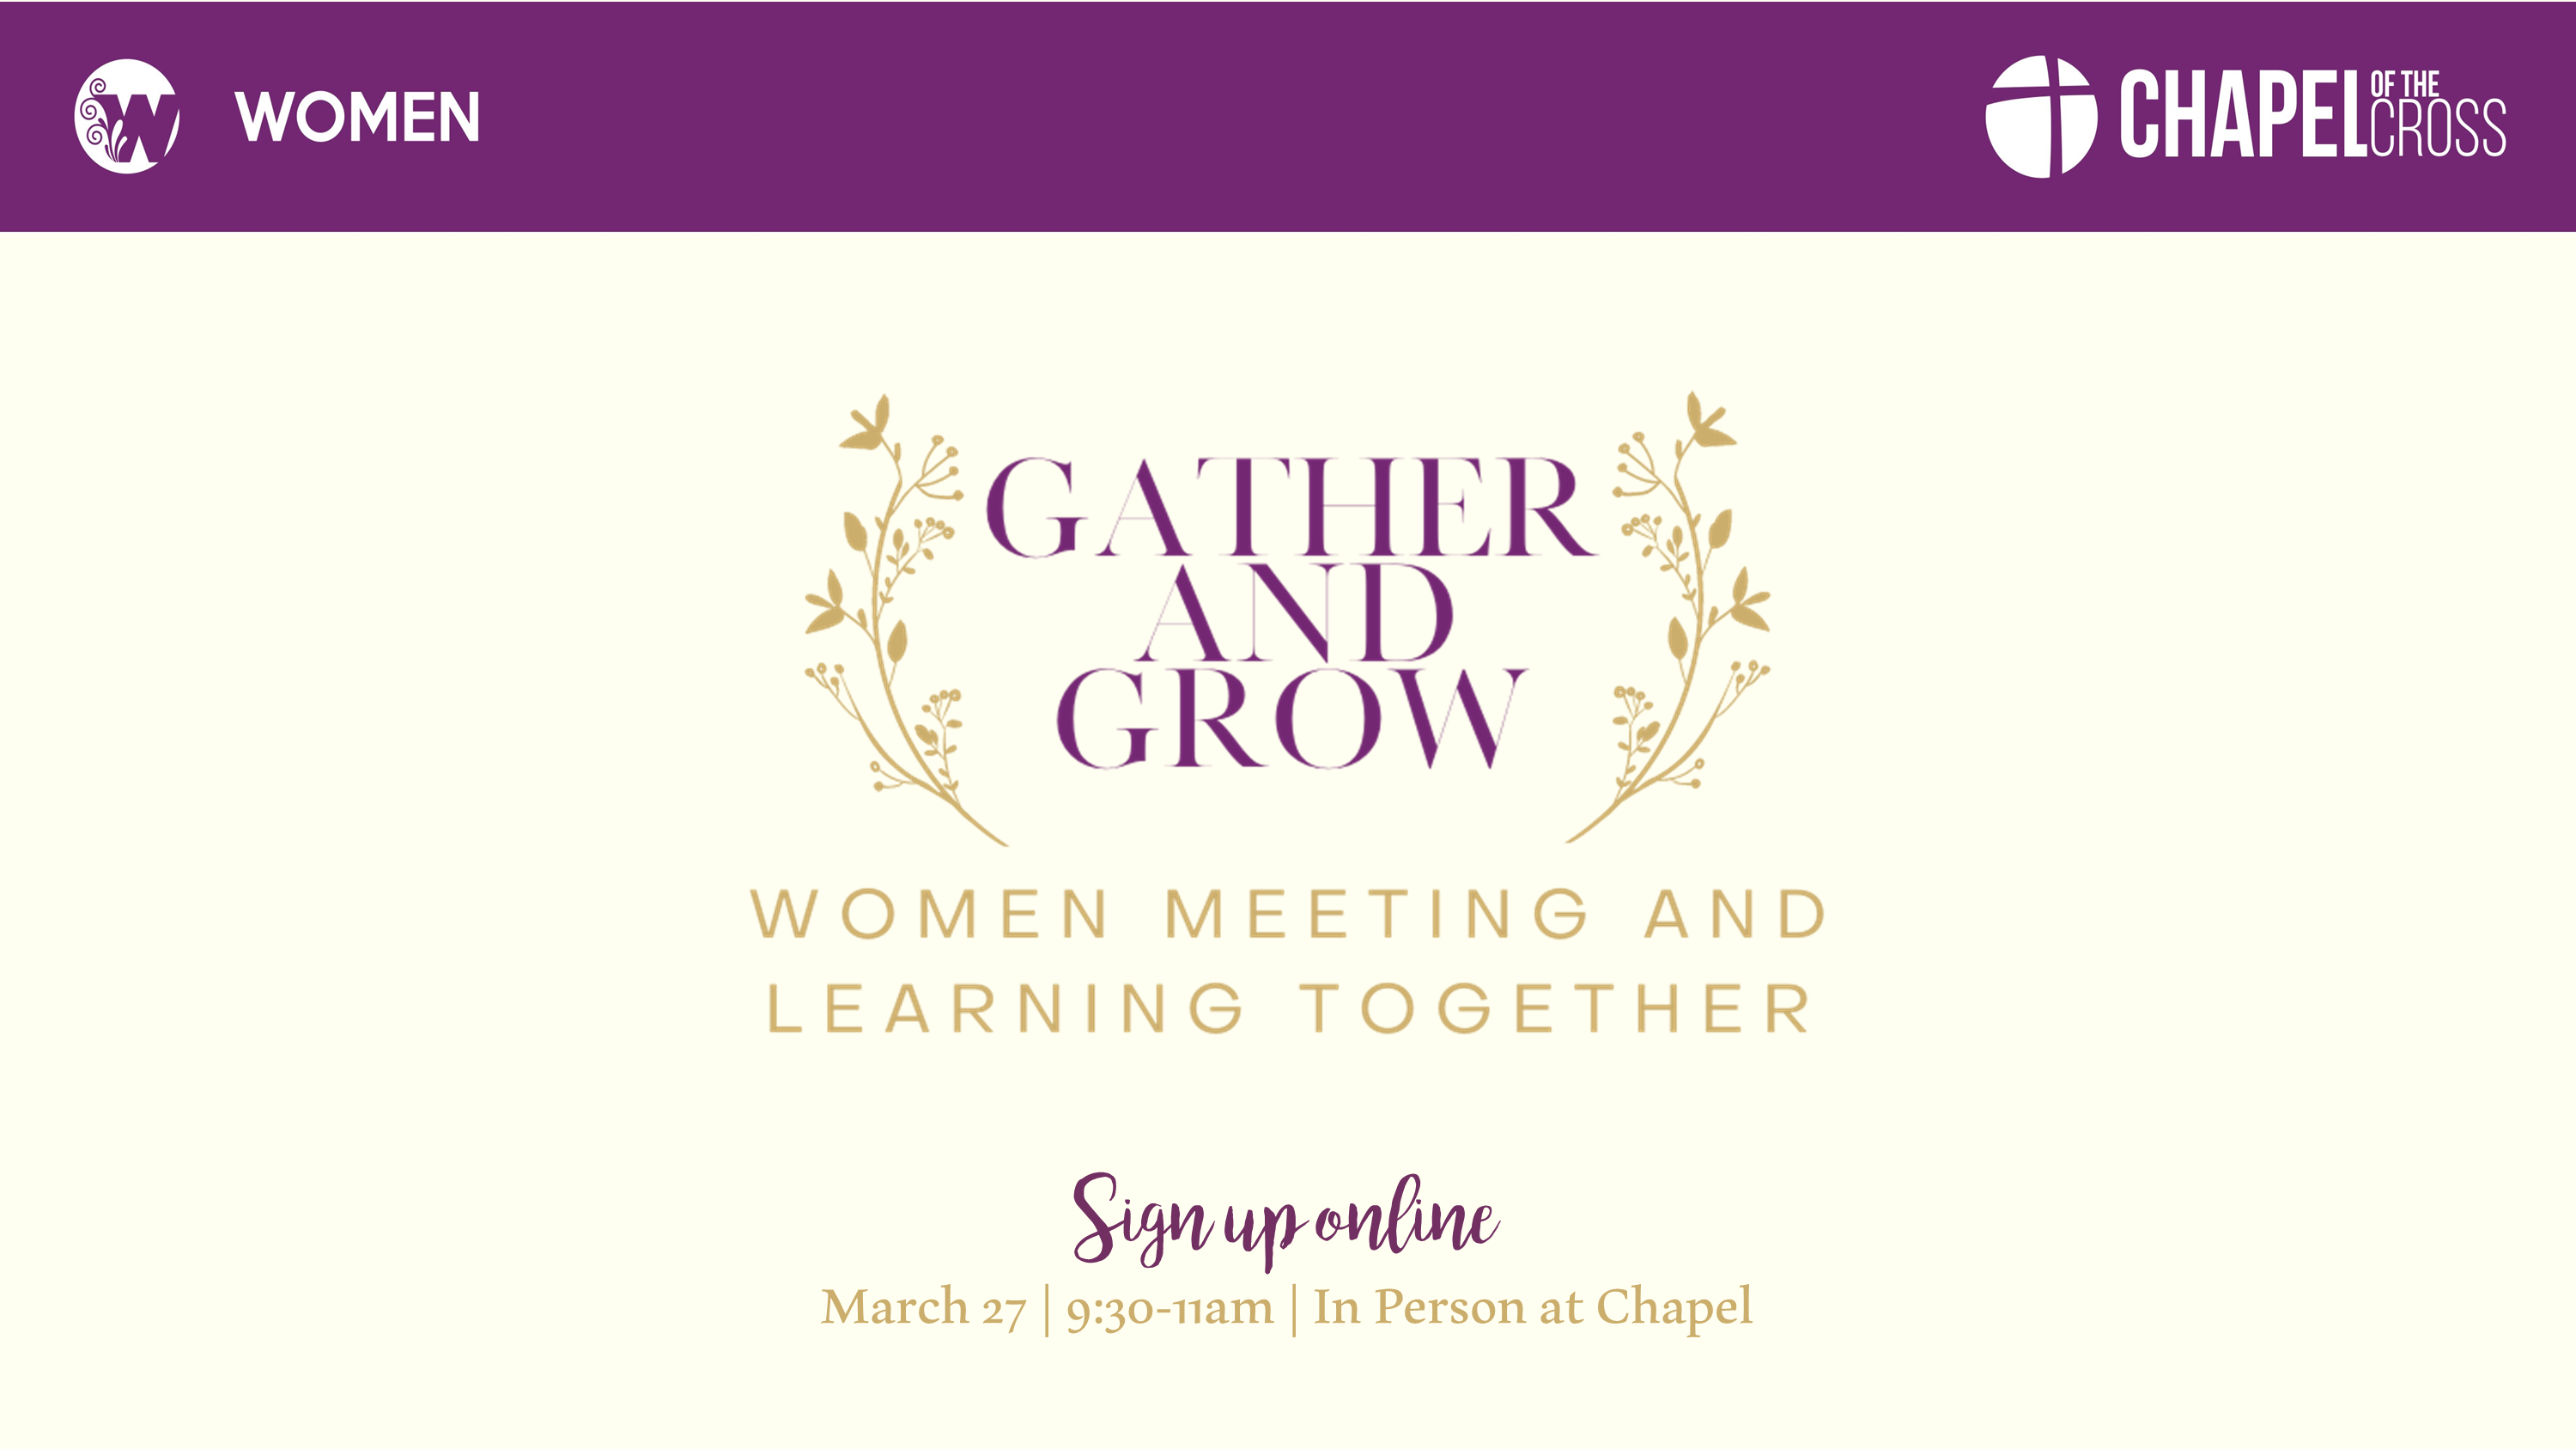 Gather and Grow March 27 Announcement Cream Background